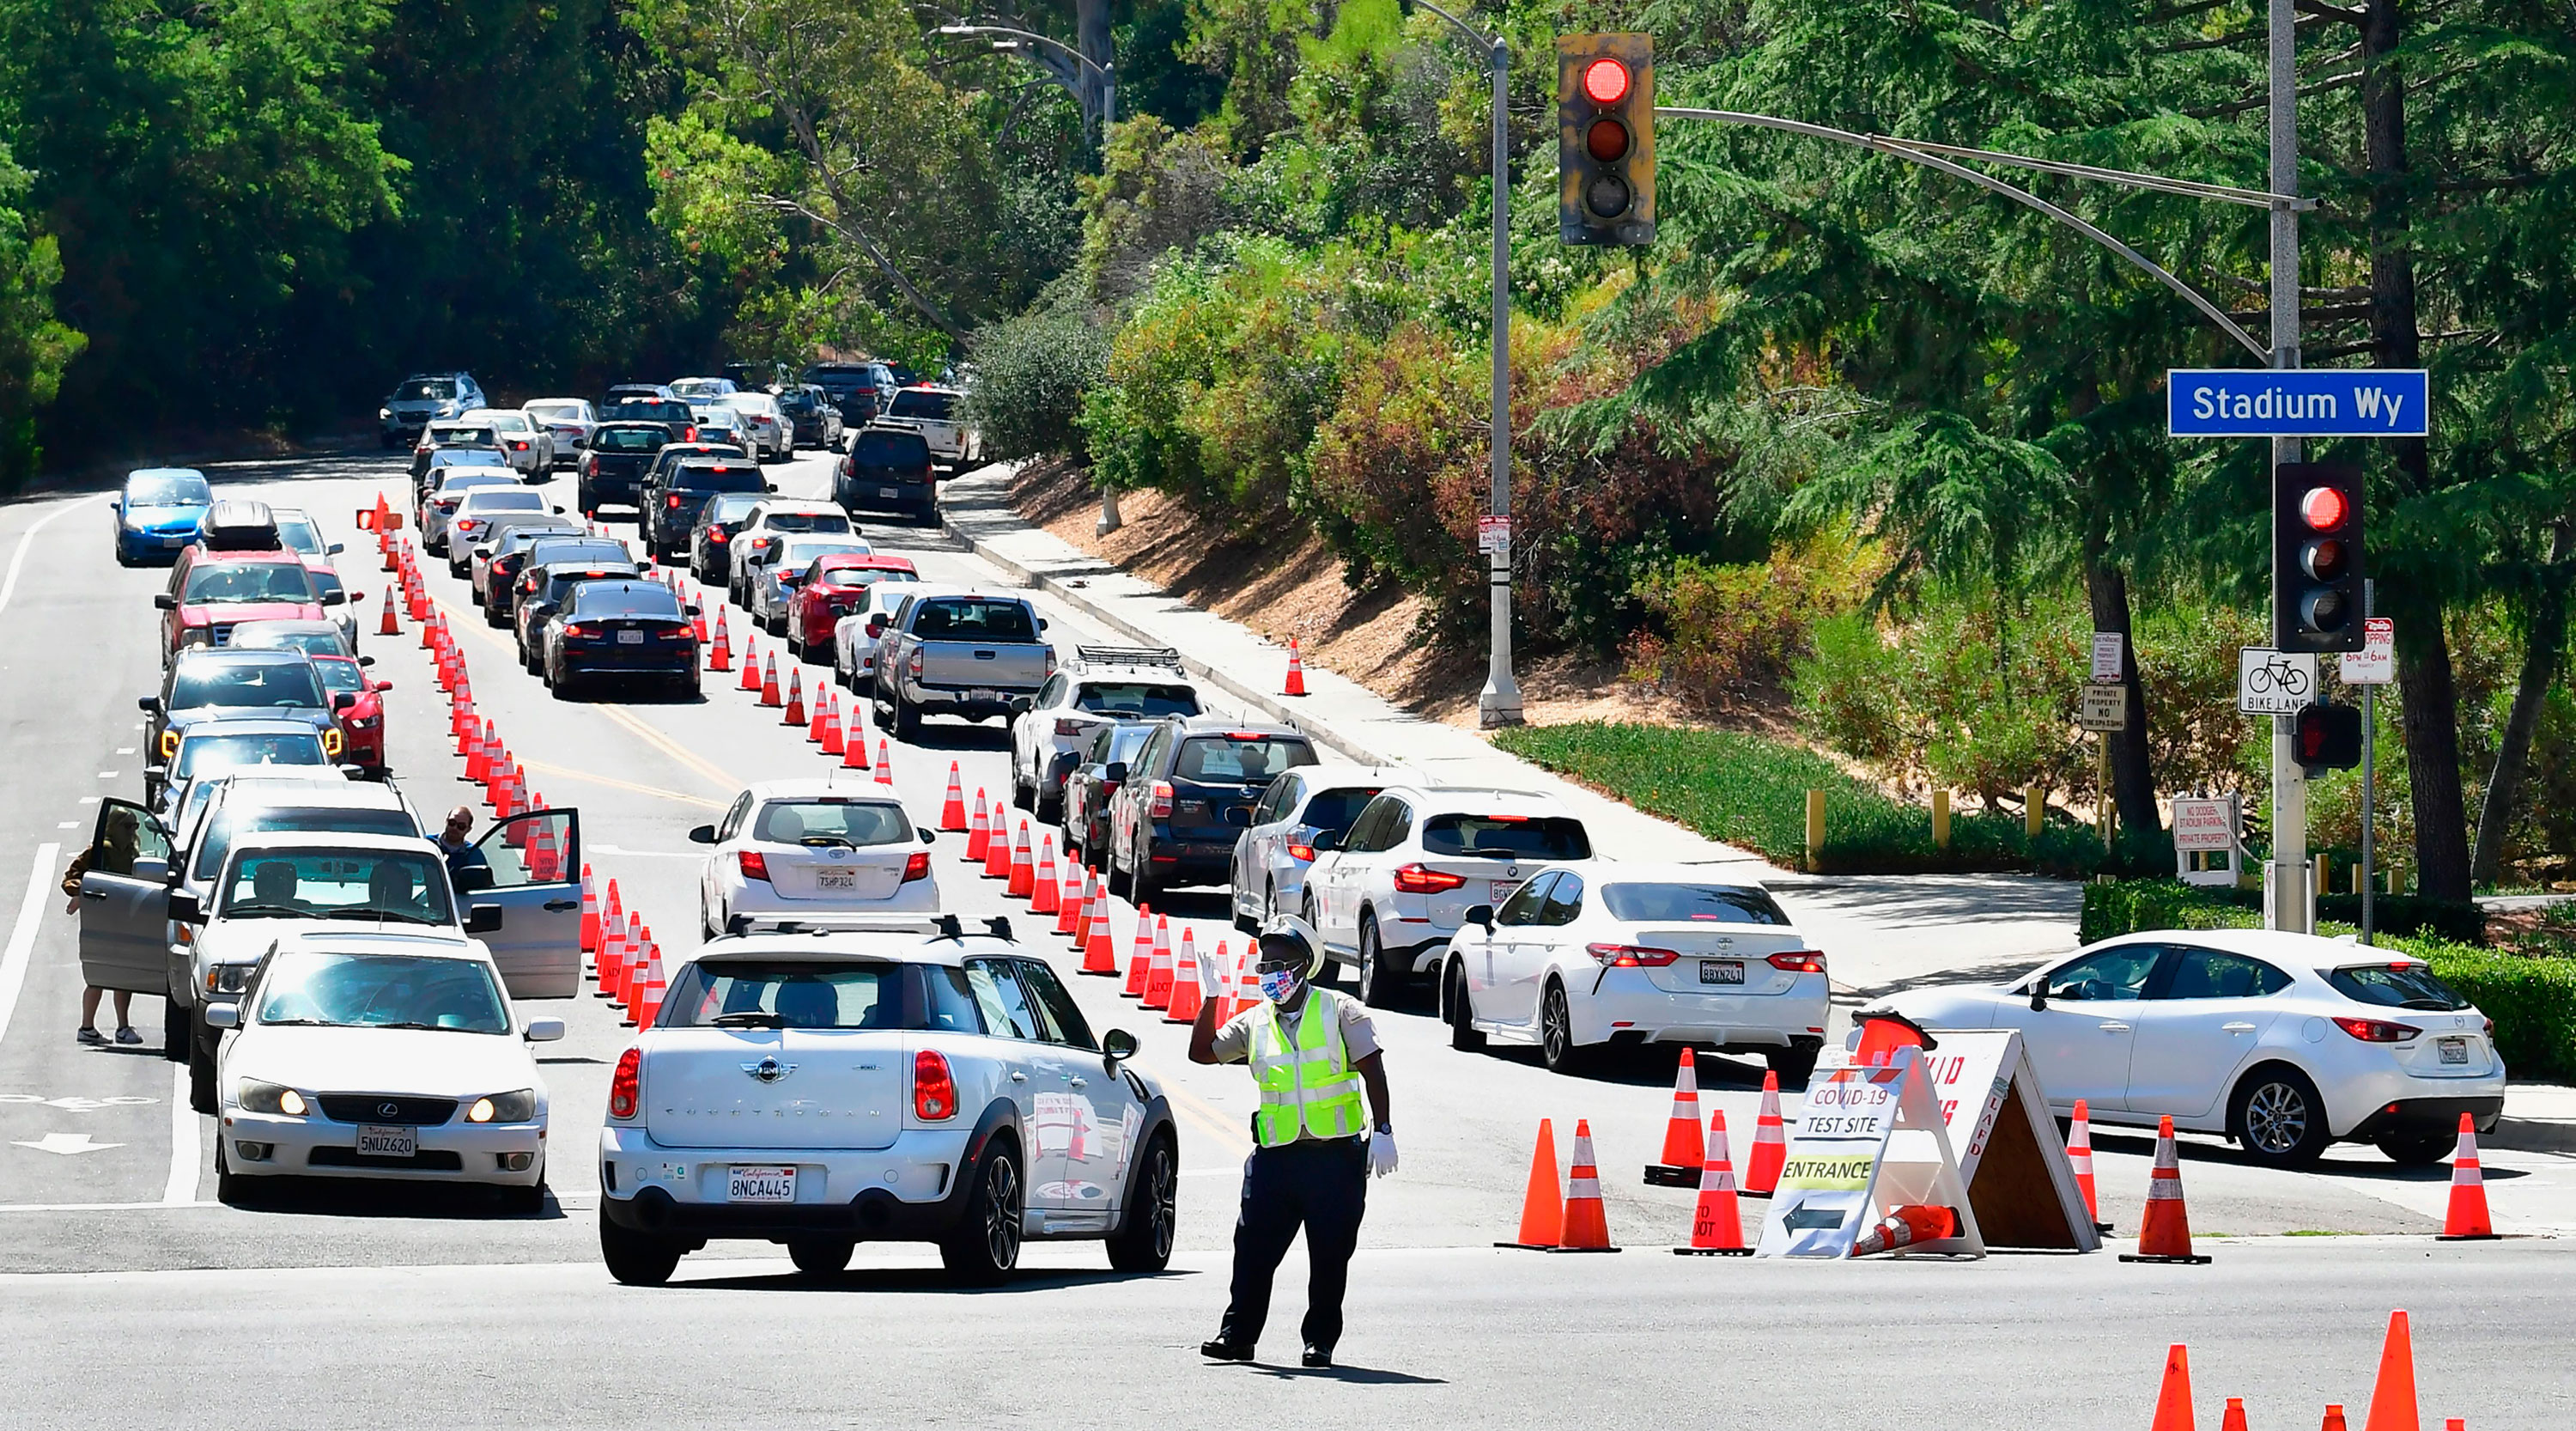 Traffic is directed at Dodger Stadium as people arrive for Covid-19 testing on June 30 in Los Angeles, California.